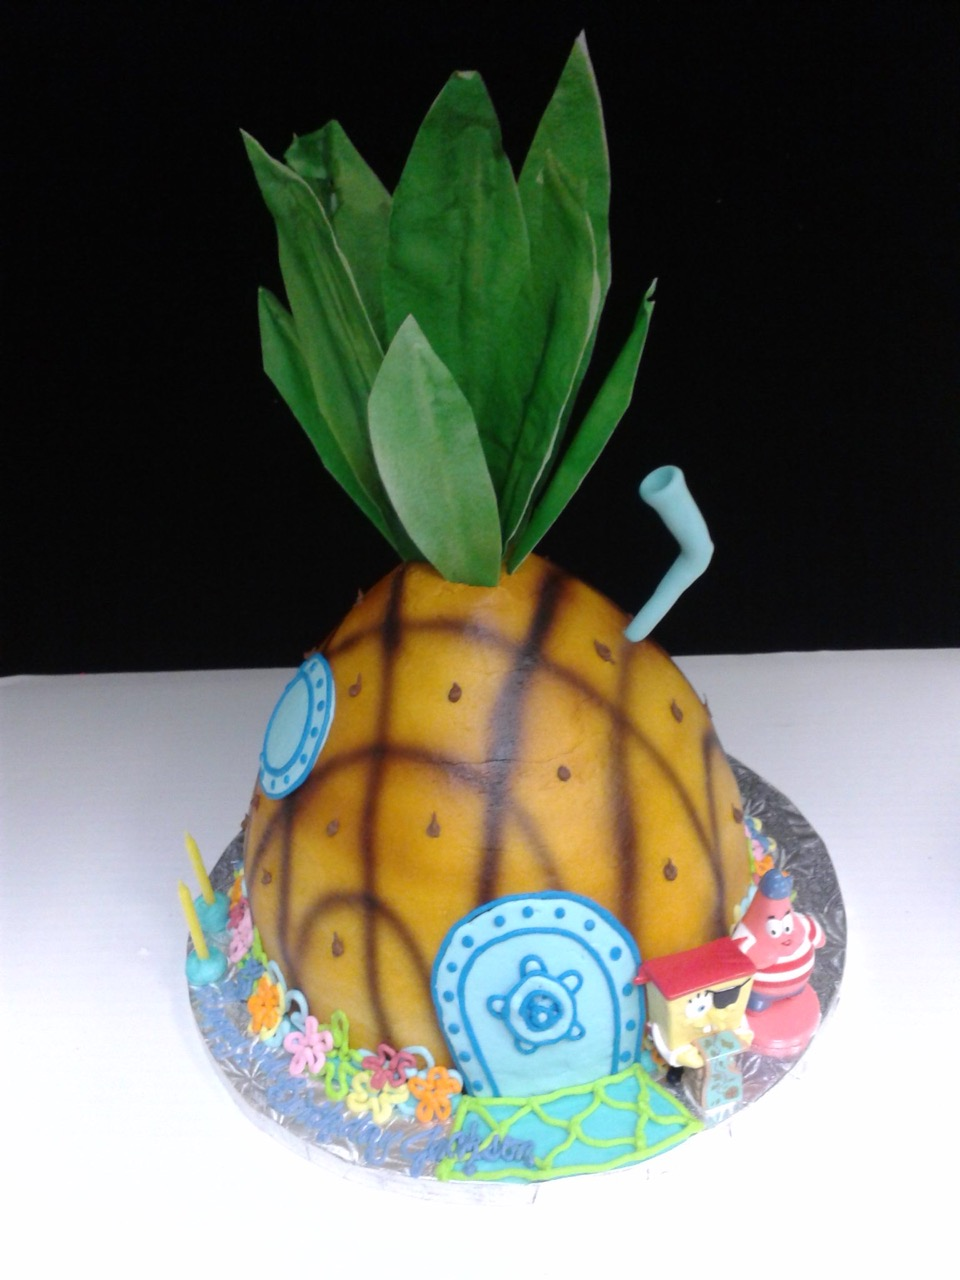 Spongebob Pineapple